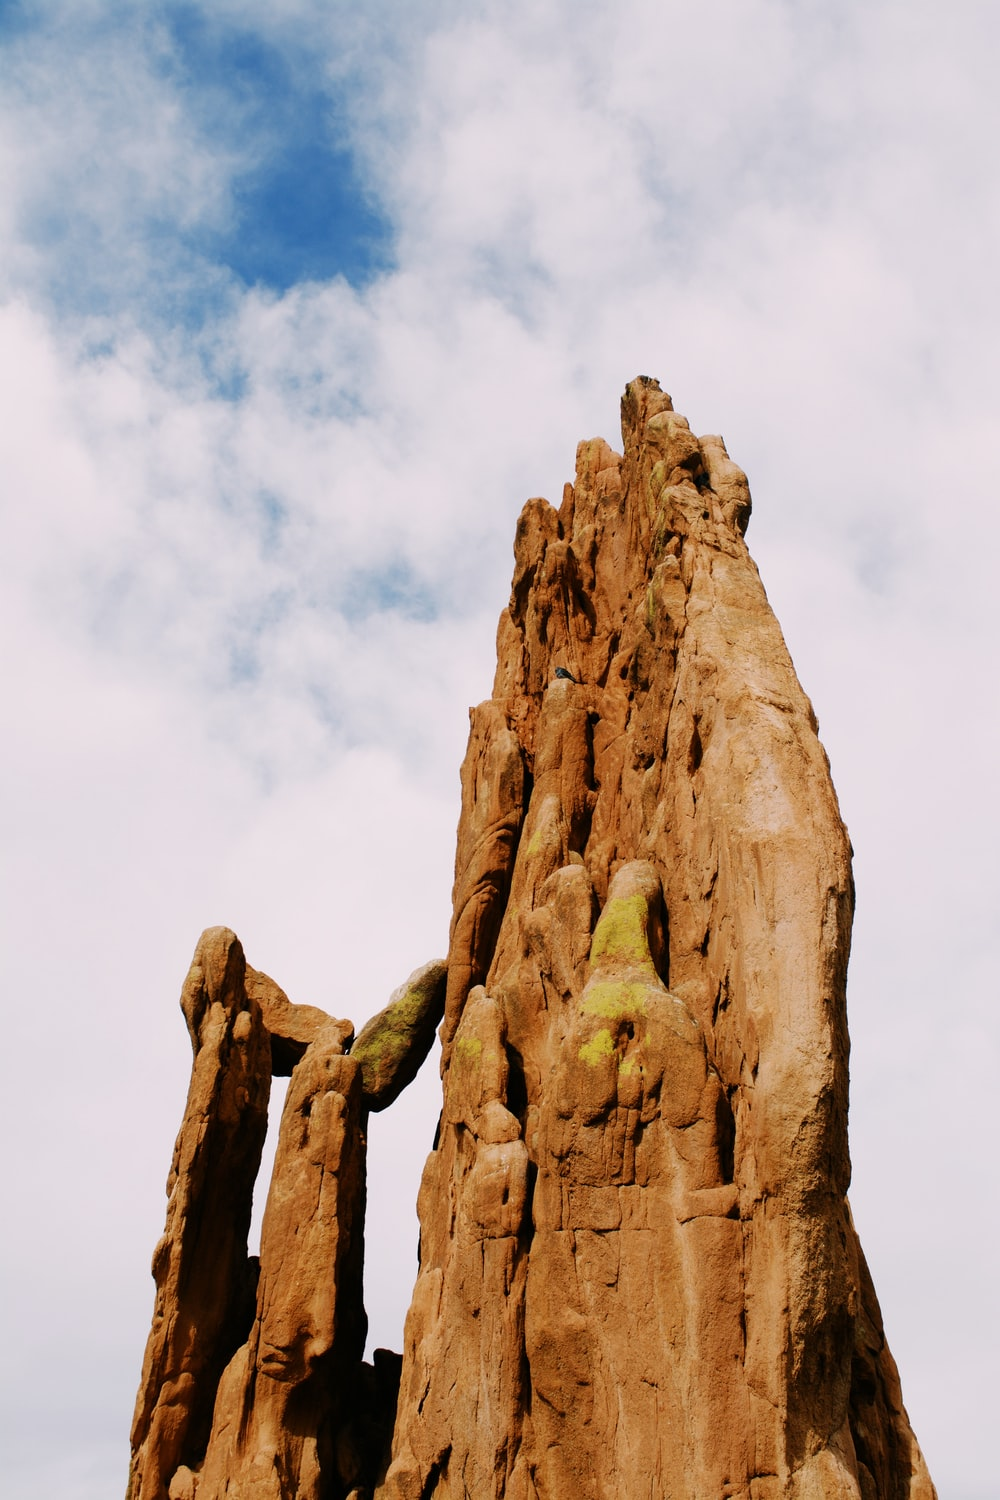 brown rock formation under white clouds during daytime